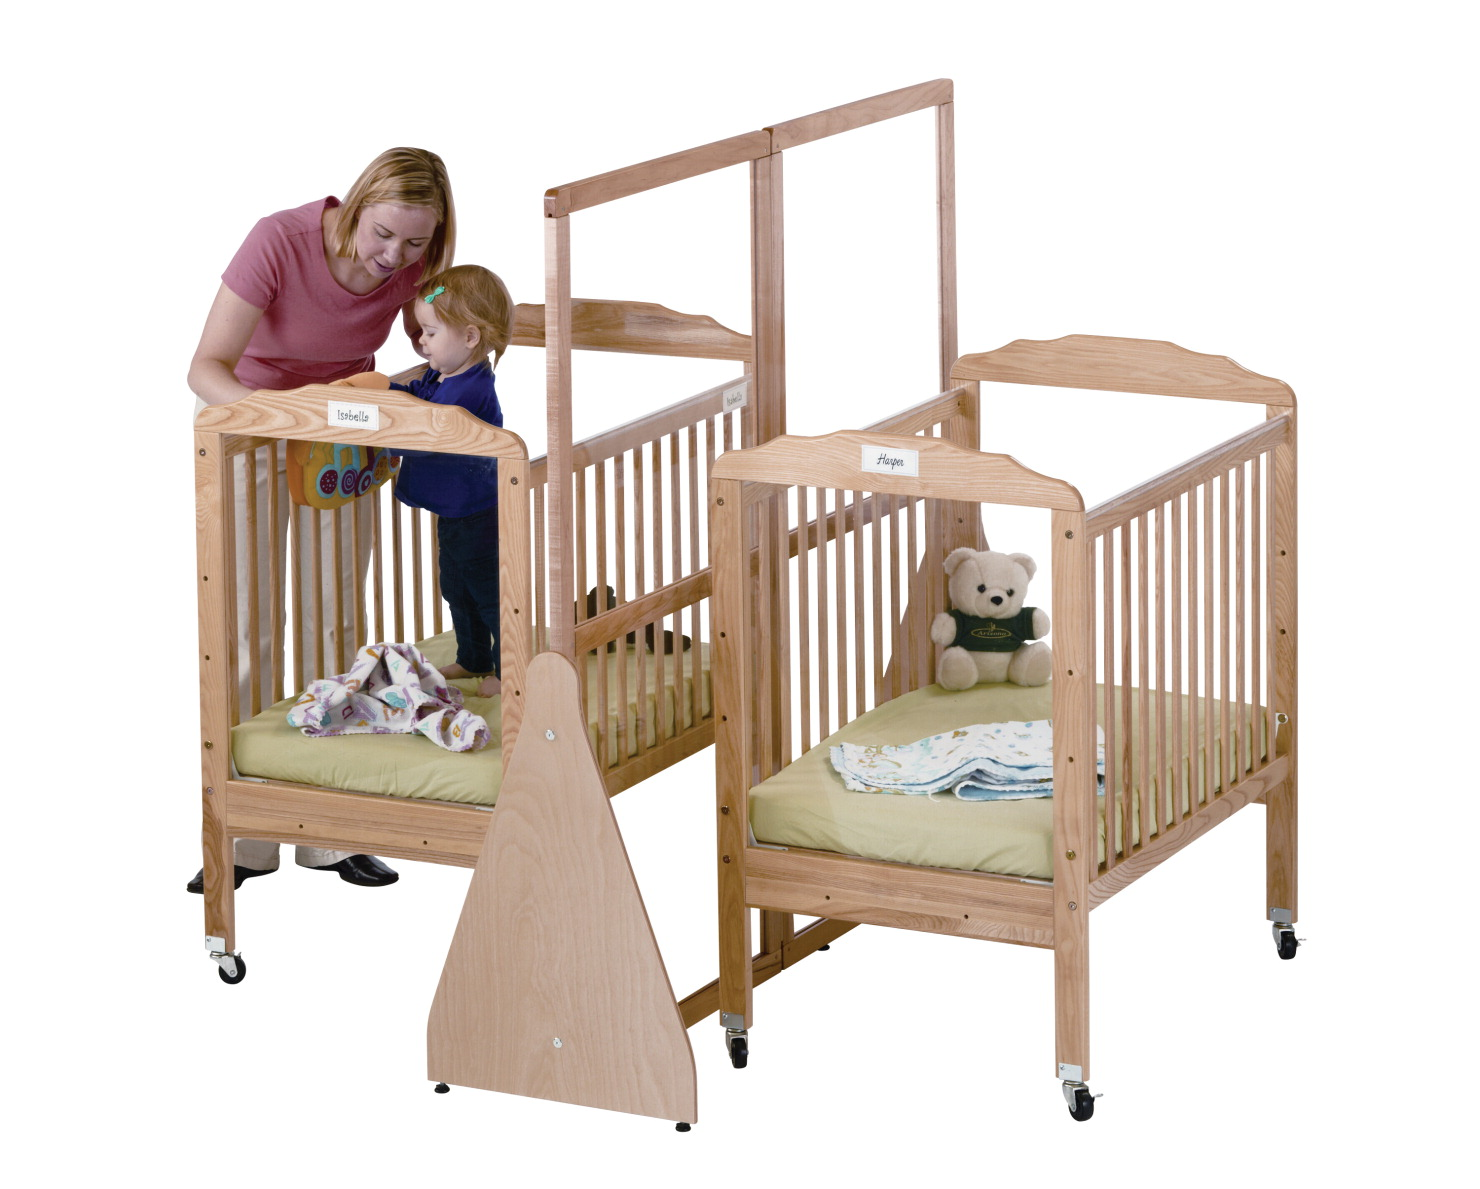 75 crib separator see thru crib dividers by jonti for Double decker crib